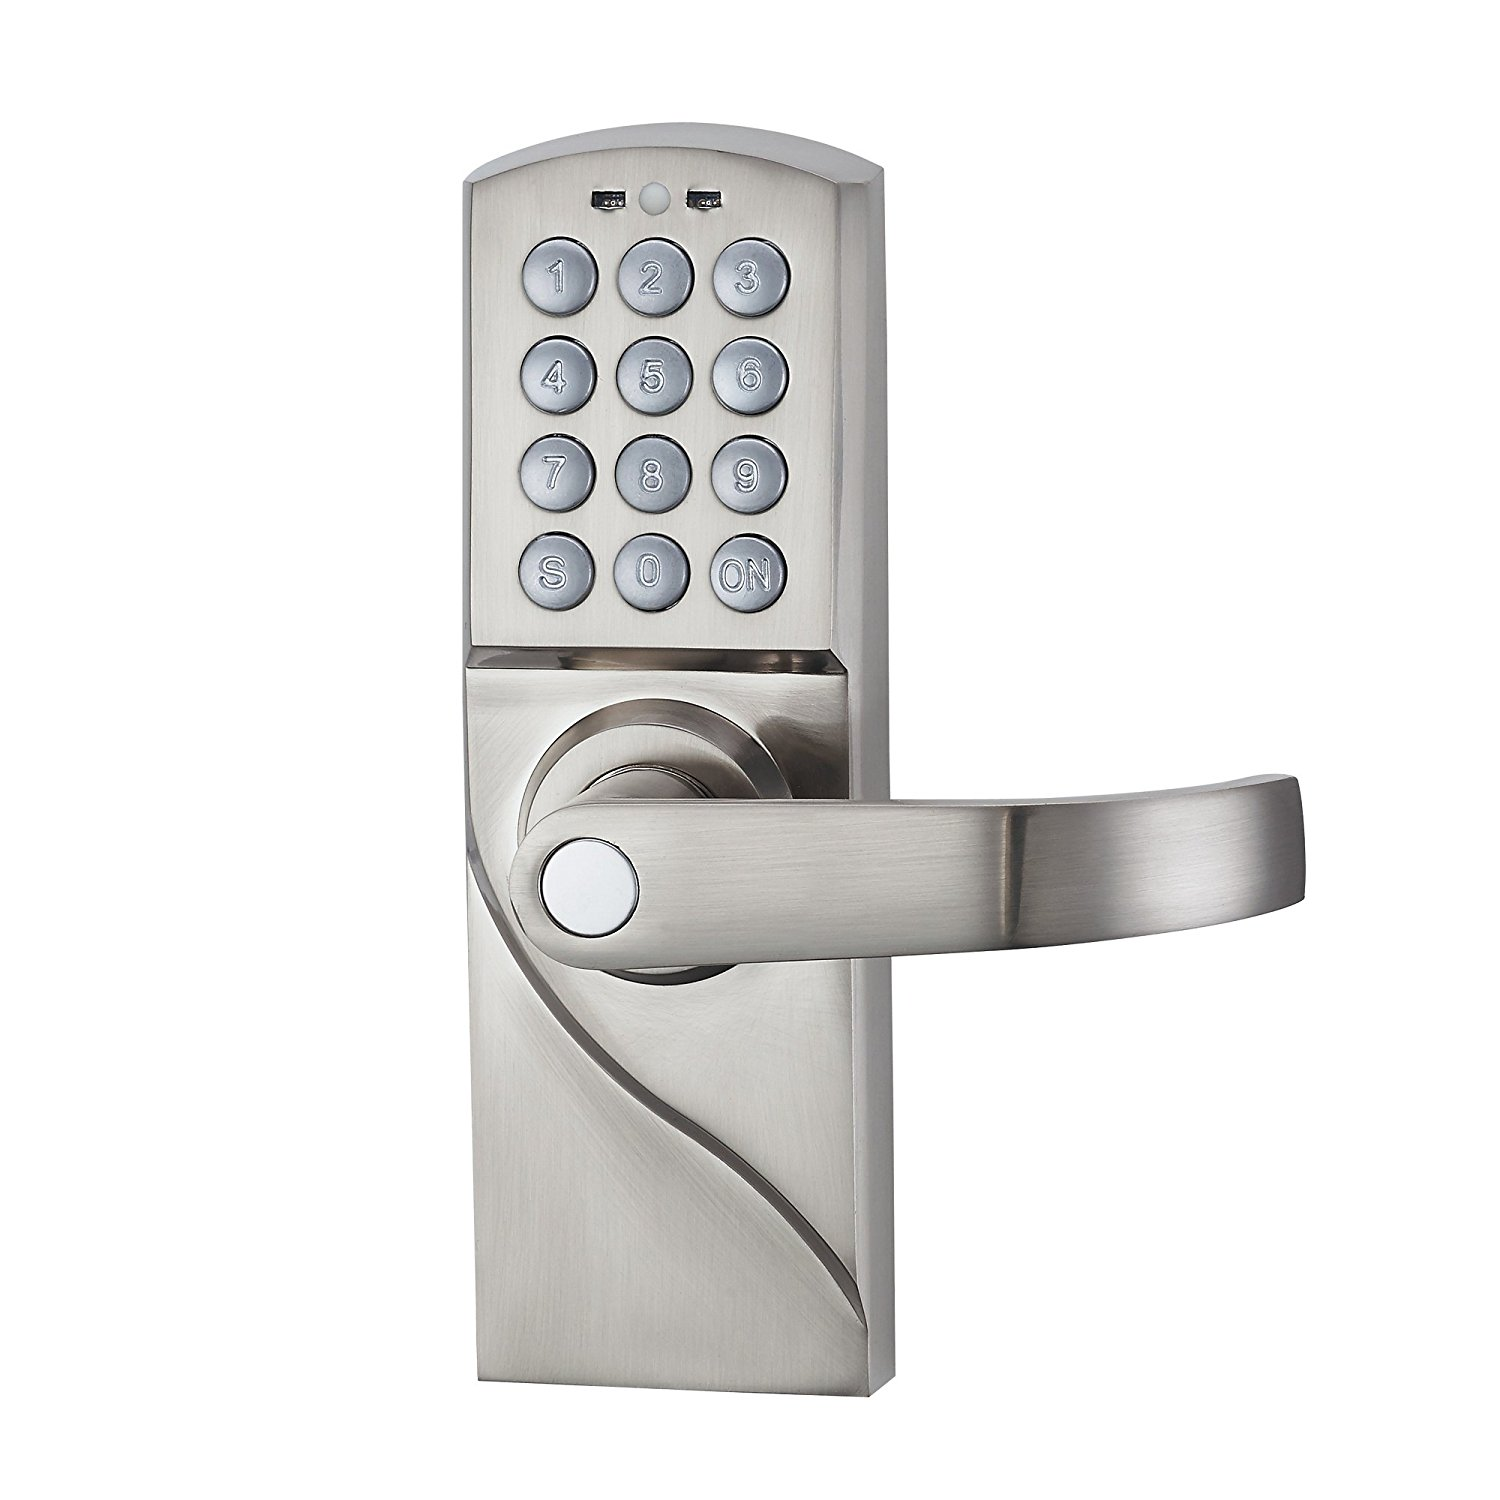 Digital Keypad Door Lock with Backup Keys Electronic Keyless Entry by Password Code Combination ospon digital keypad door lock with backup round key locker electronic entry by password code combination password key os7717